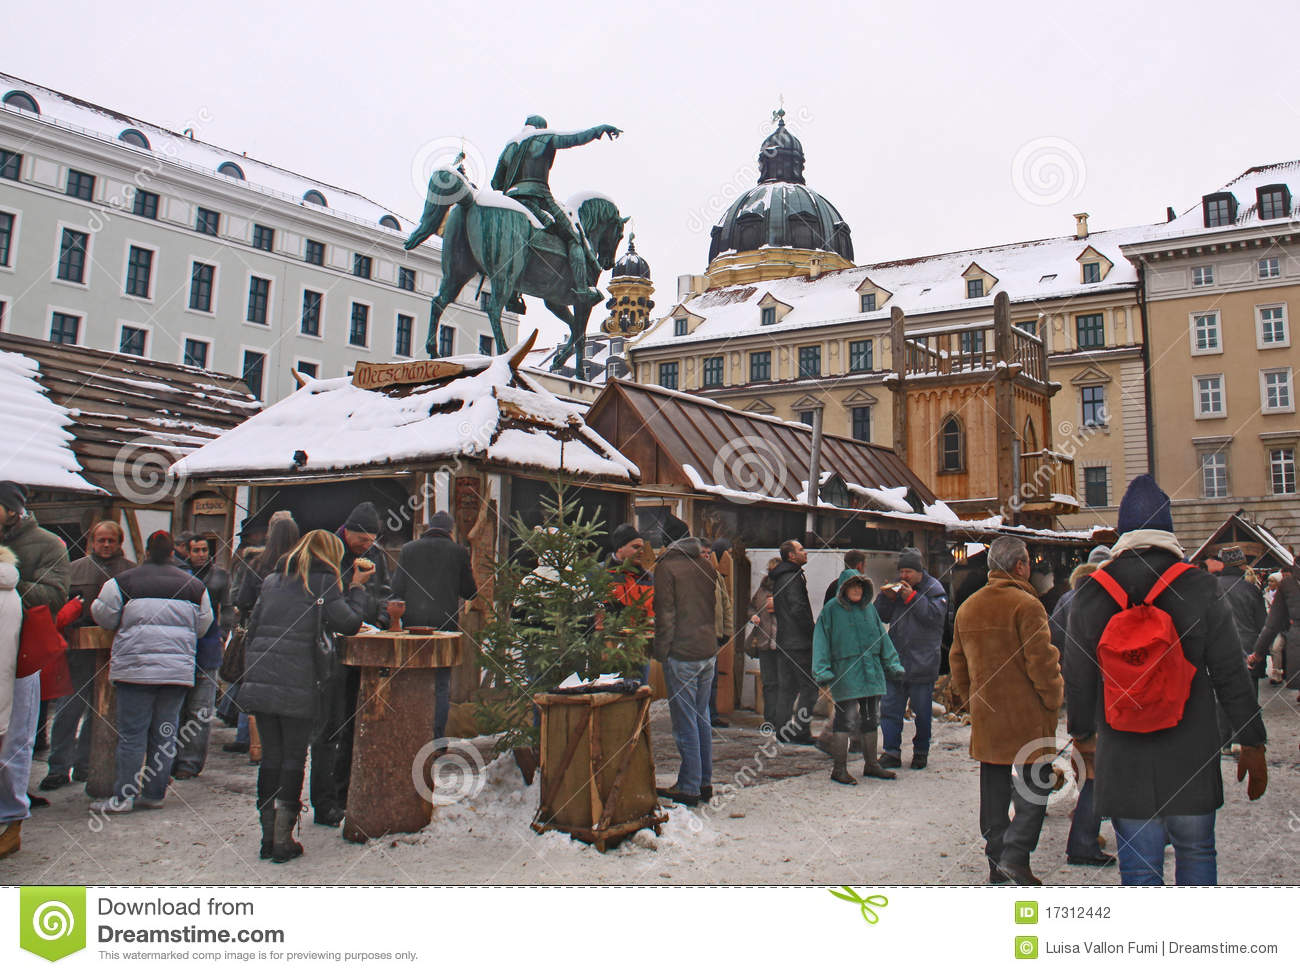 mittelalter weihnachtsmarkt in m nchen redaktionelles stockfotografie bild von st dtisch. Black Bedroom Furniture Sets. Home Design Ideas